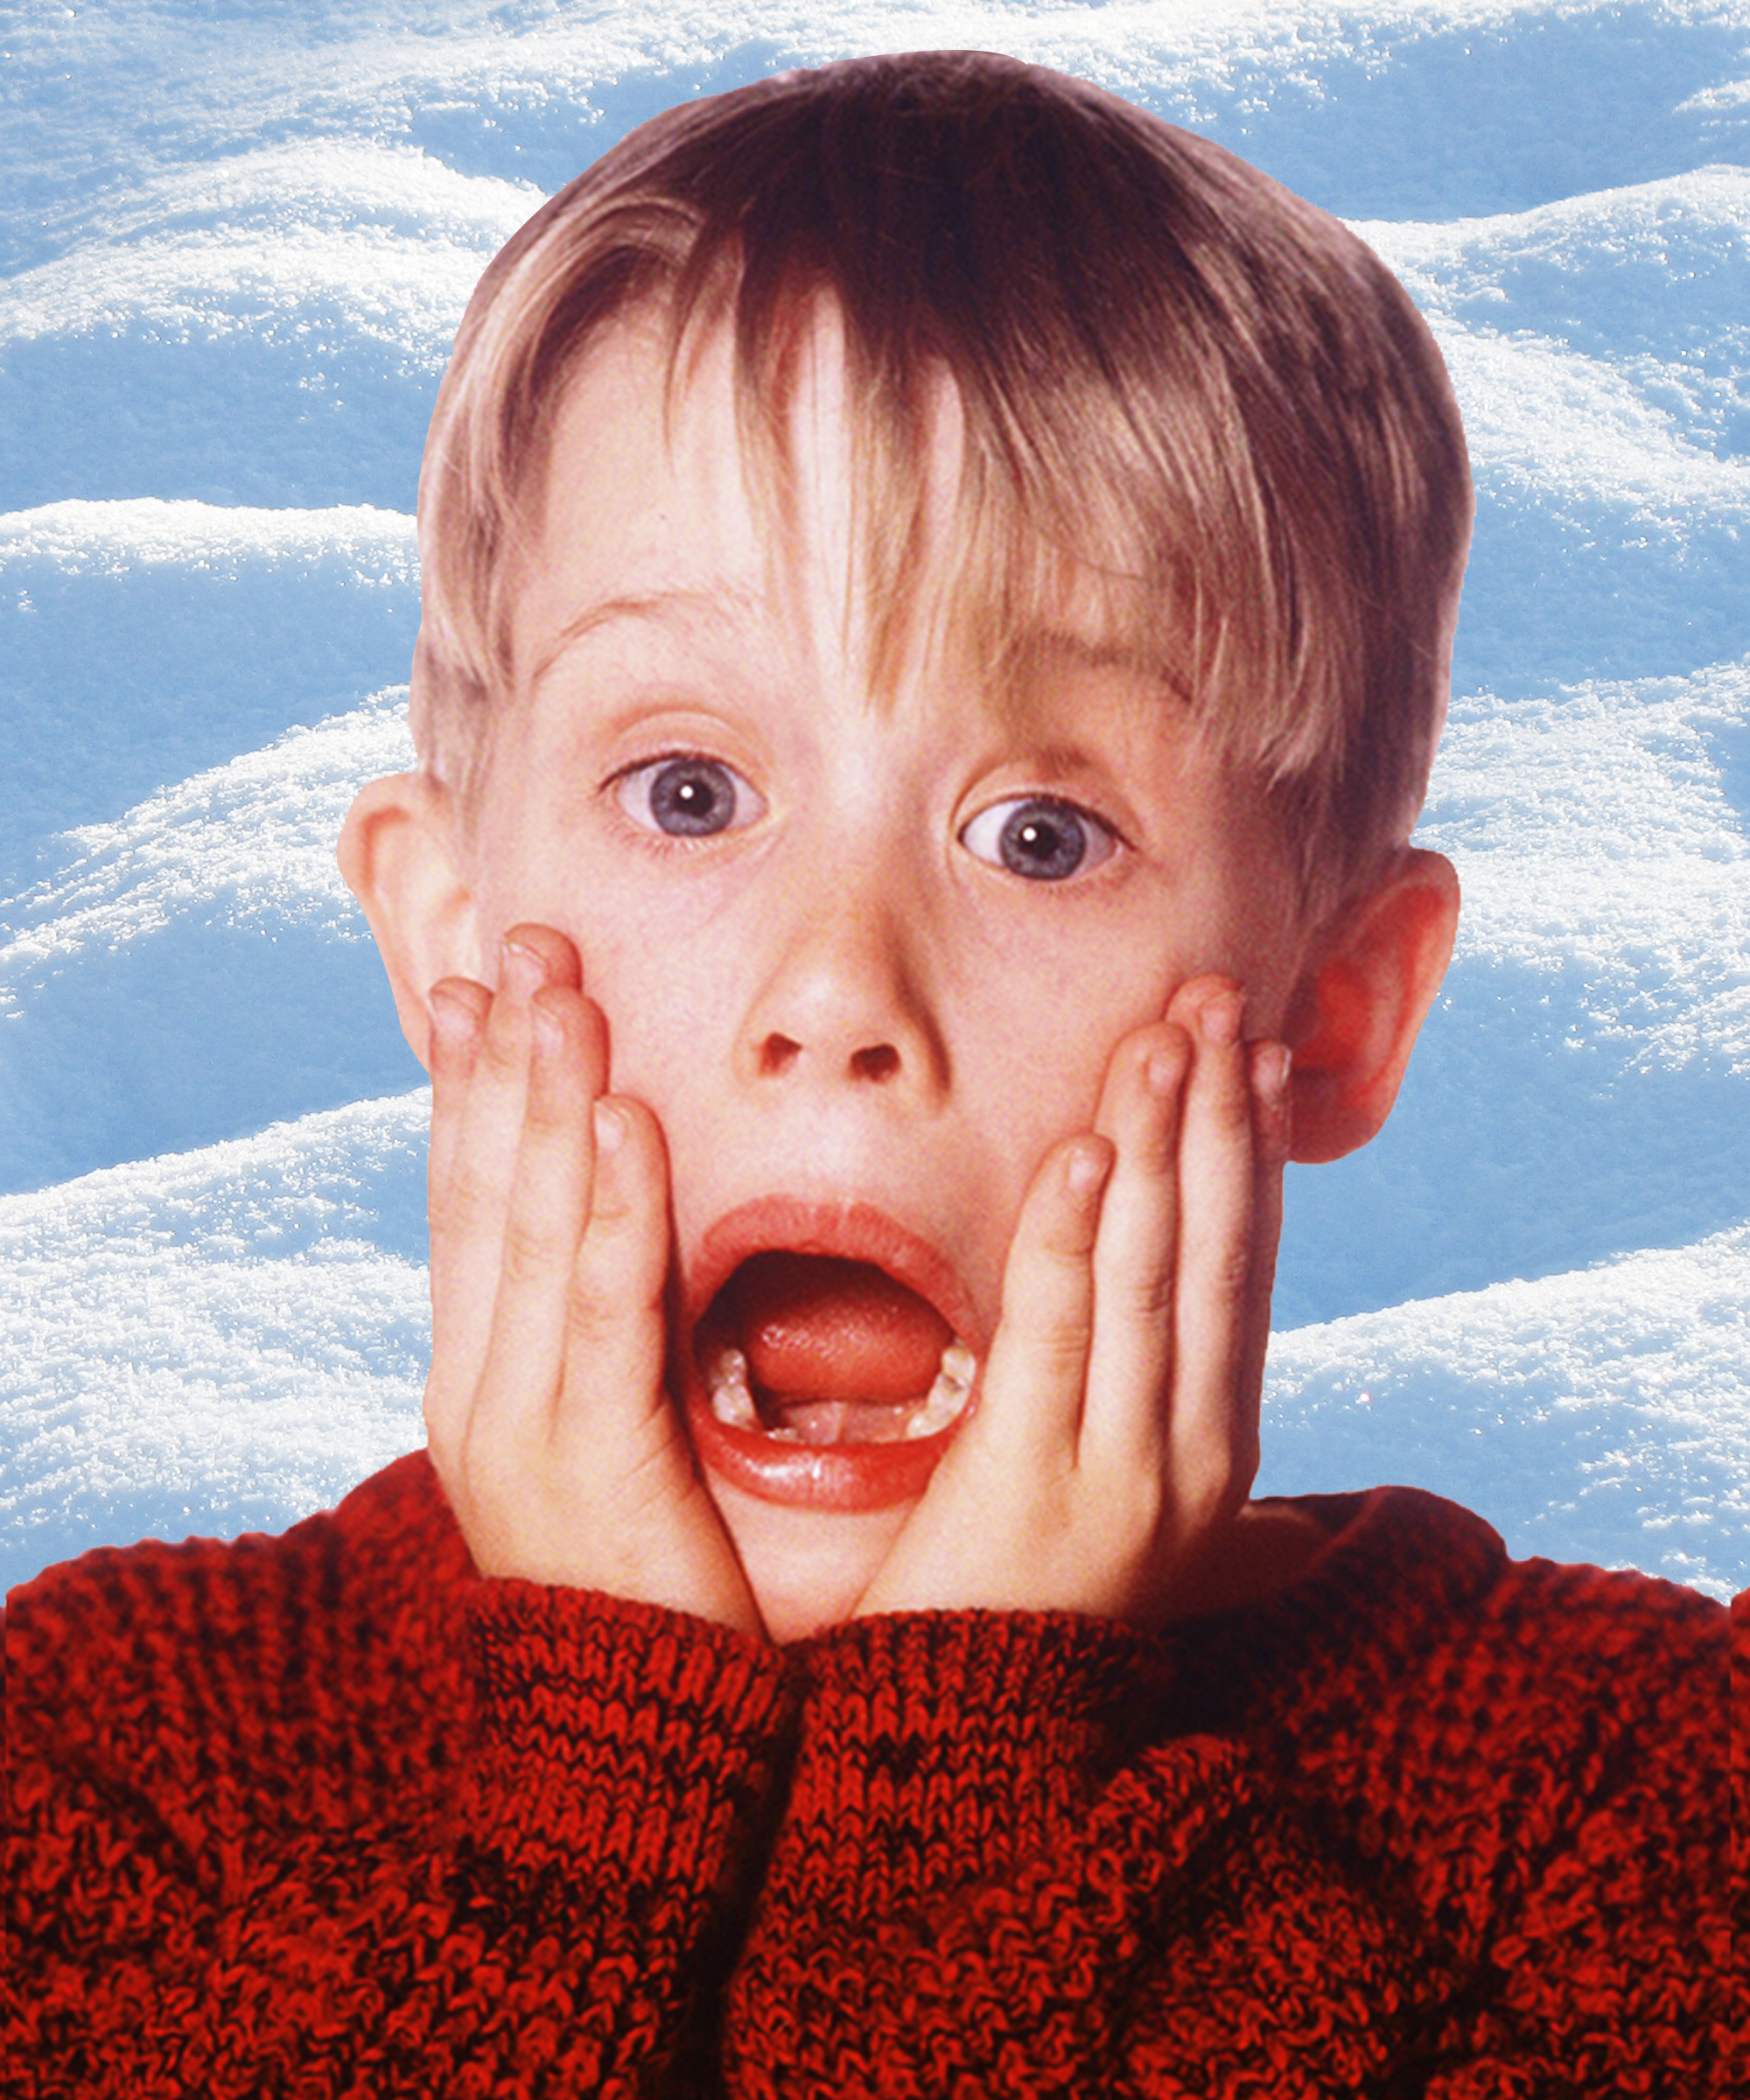 Home Alone Http Santasredletter Com: Home Alone Impossible Today